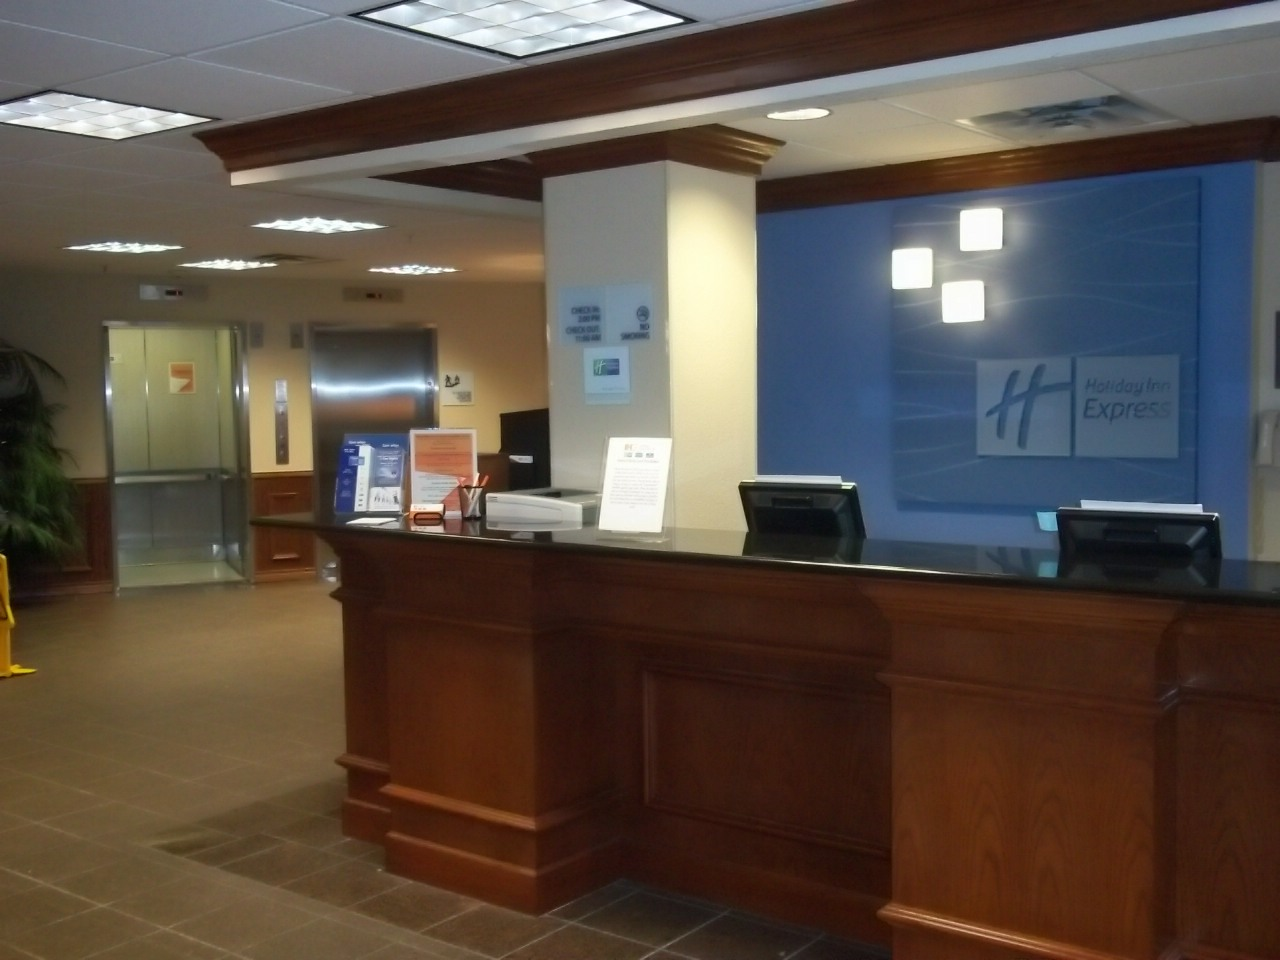 Holiday Inn Express at Keith Ware Hall